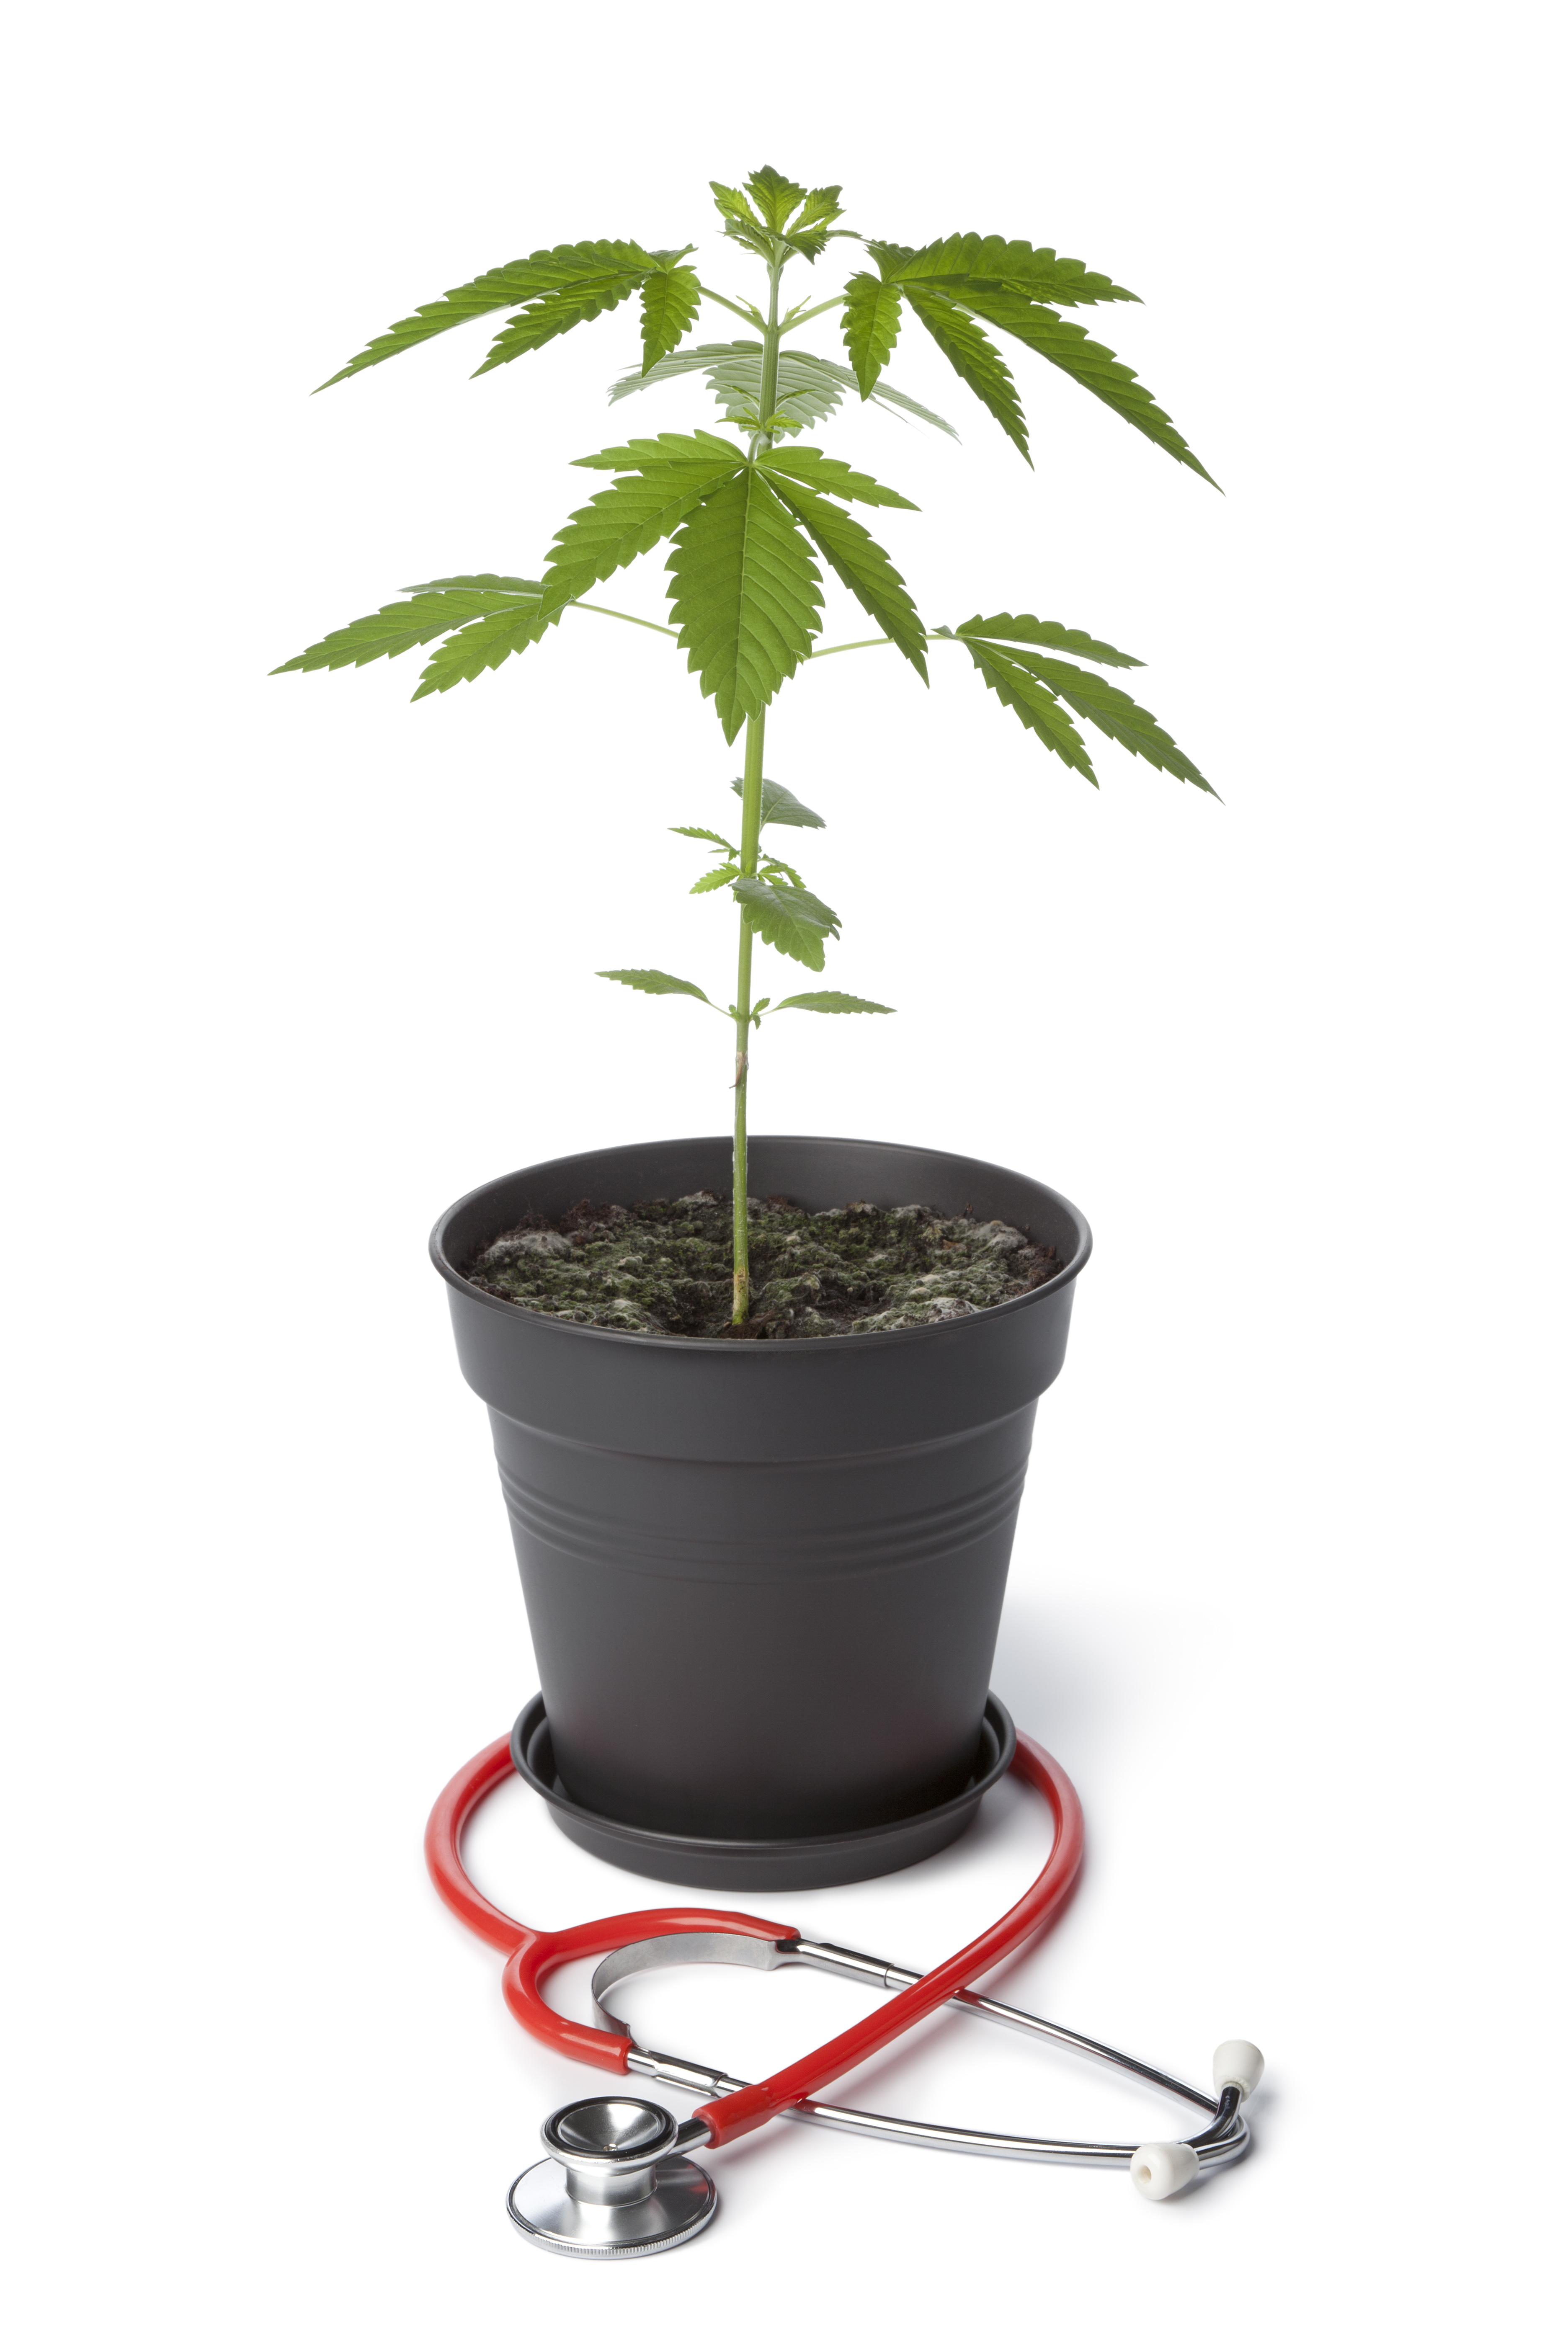 Marijuana plant used for medicinal cannabis with a stethoscope around it